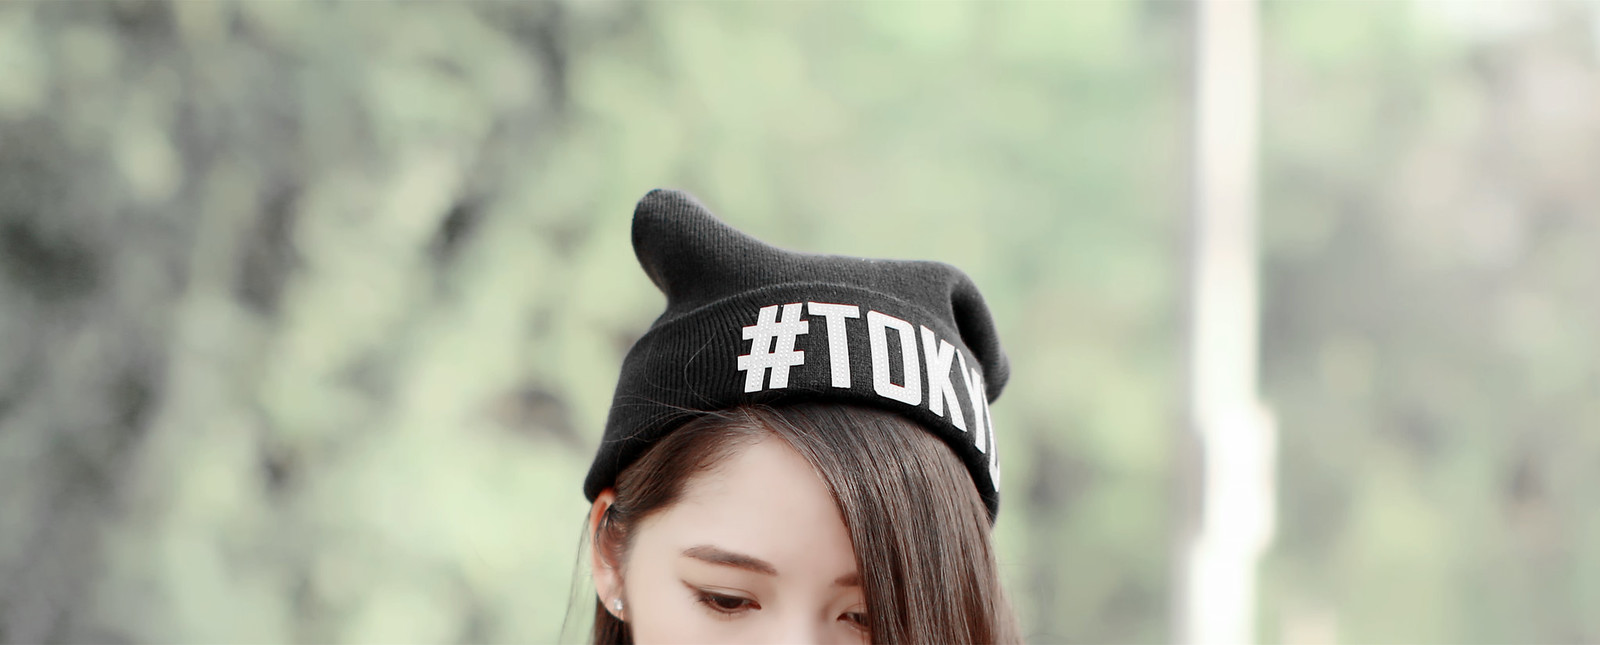 0665-beanie-sporty-chic-ootd-fall2016-autumn-ulzzang-korean-fashion